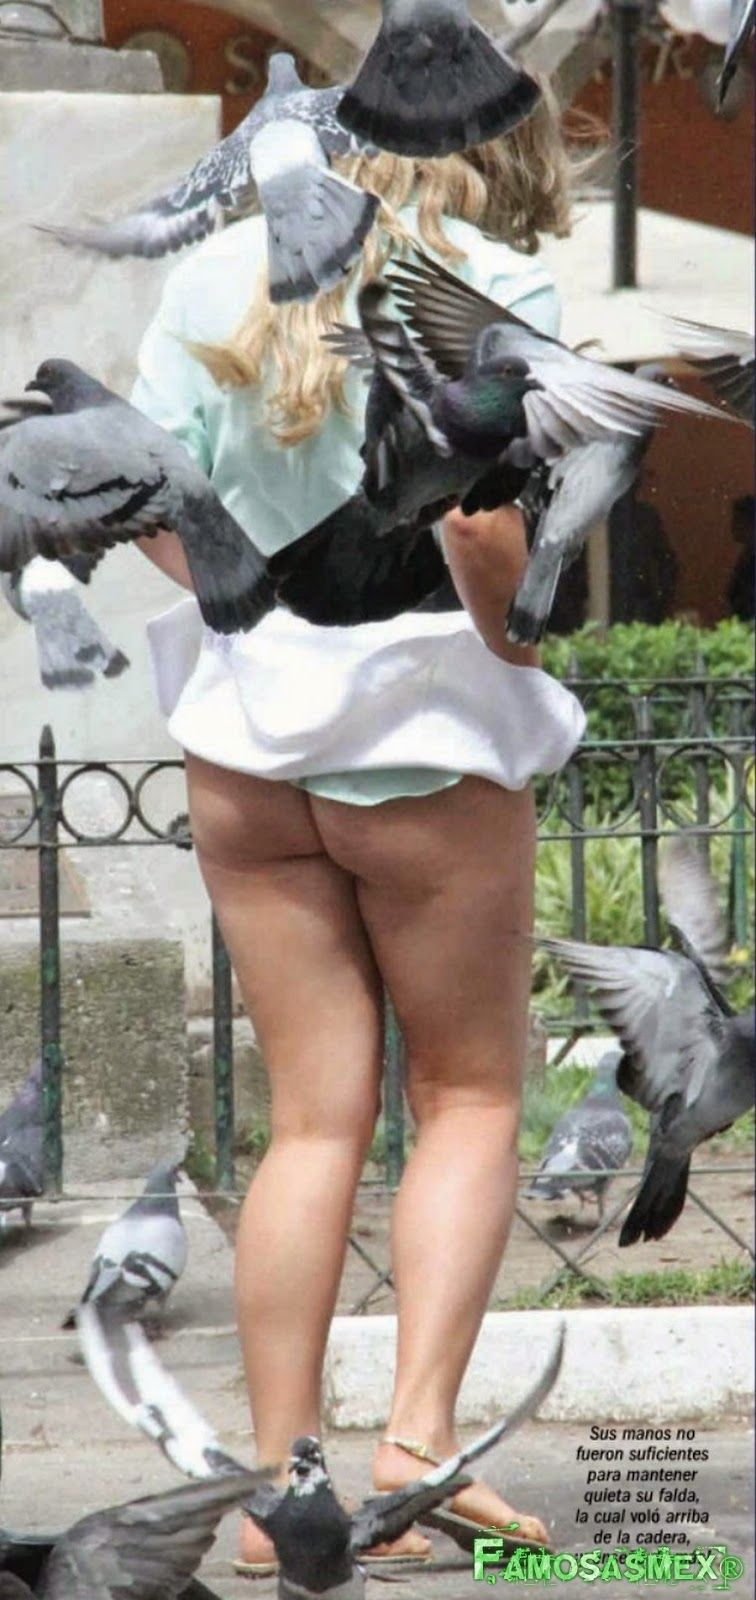 Congratulate, De famosas mexicanas upskirt opinion